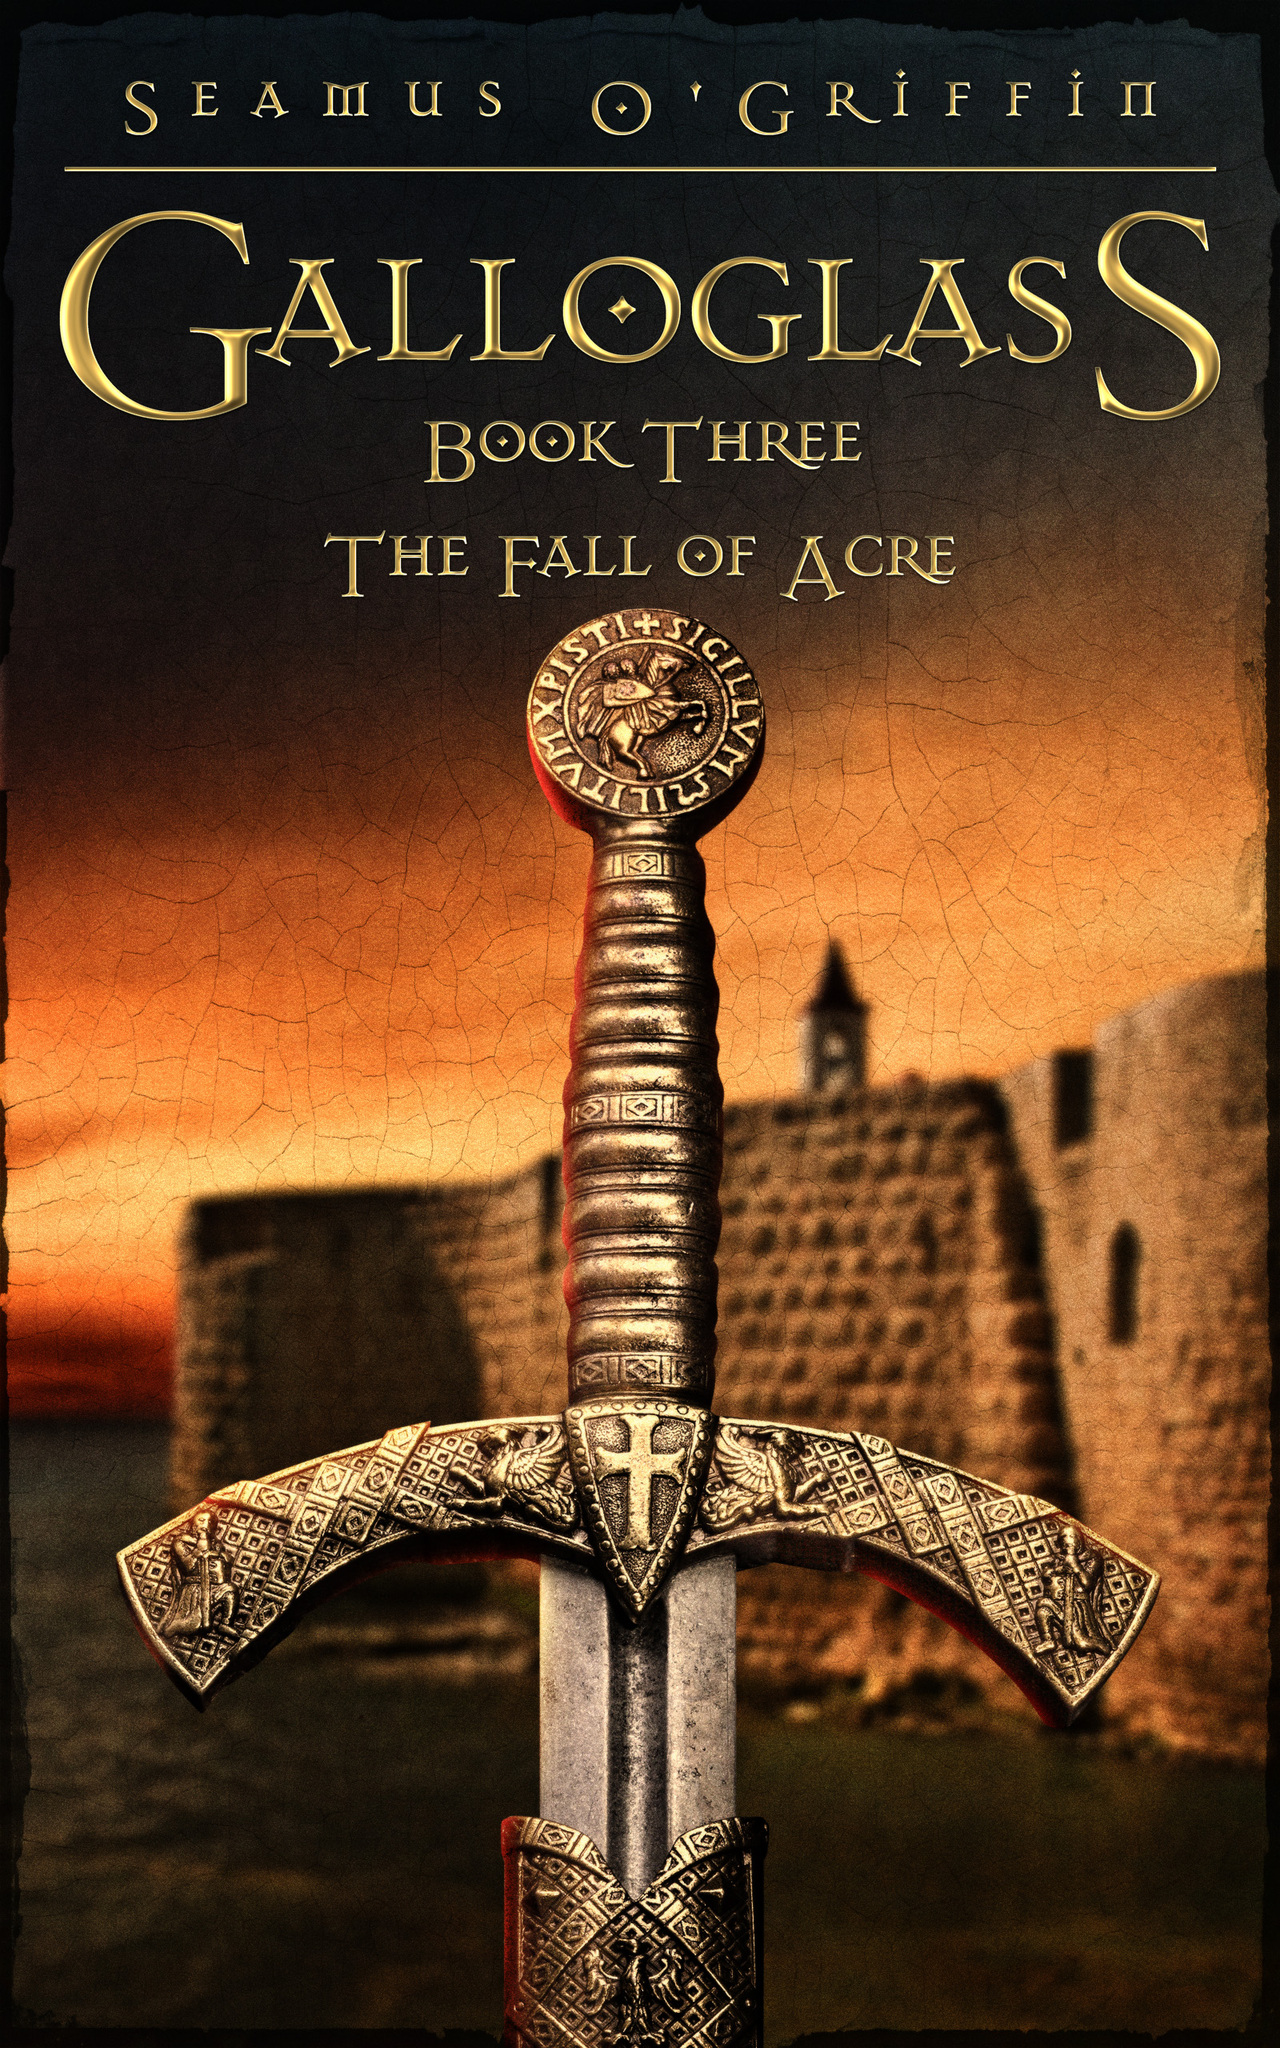 Book three cover